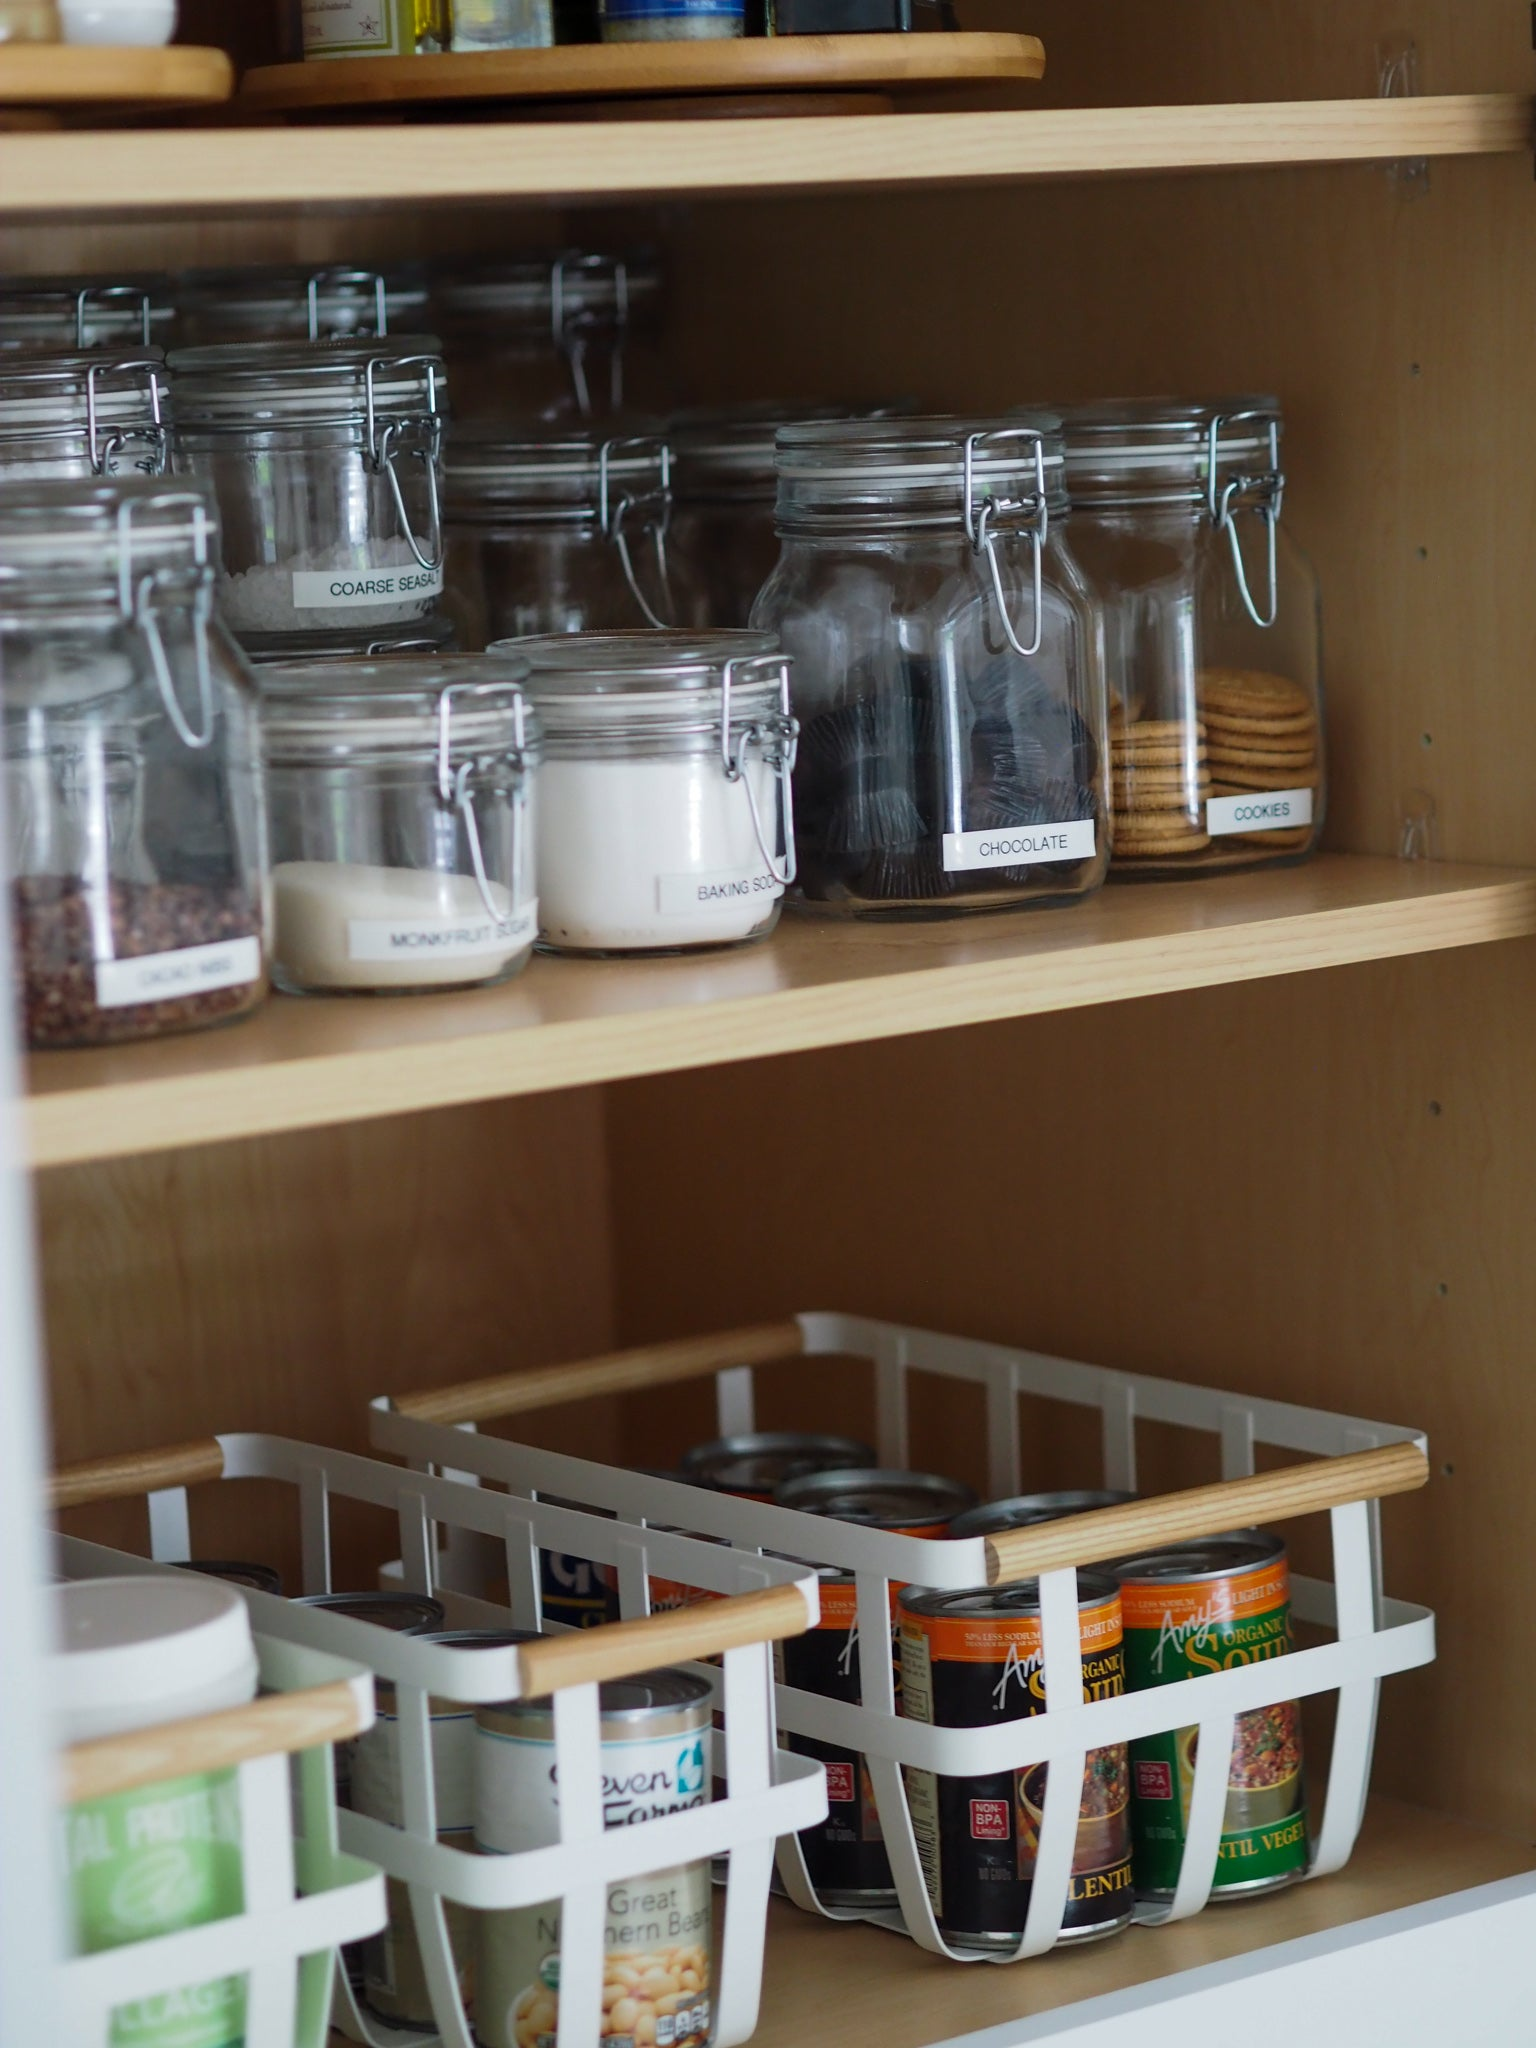 baskets and clear canisters on a shelf